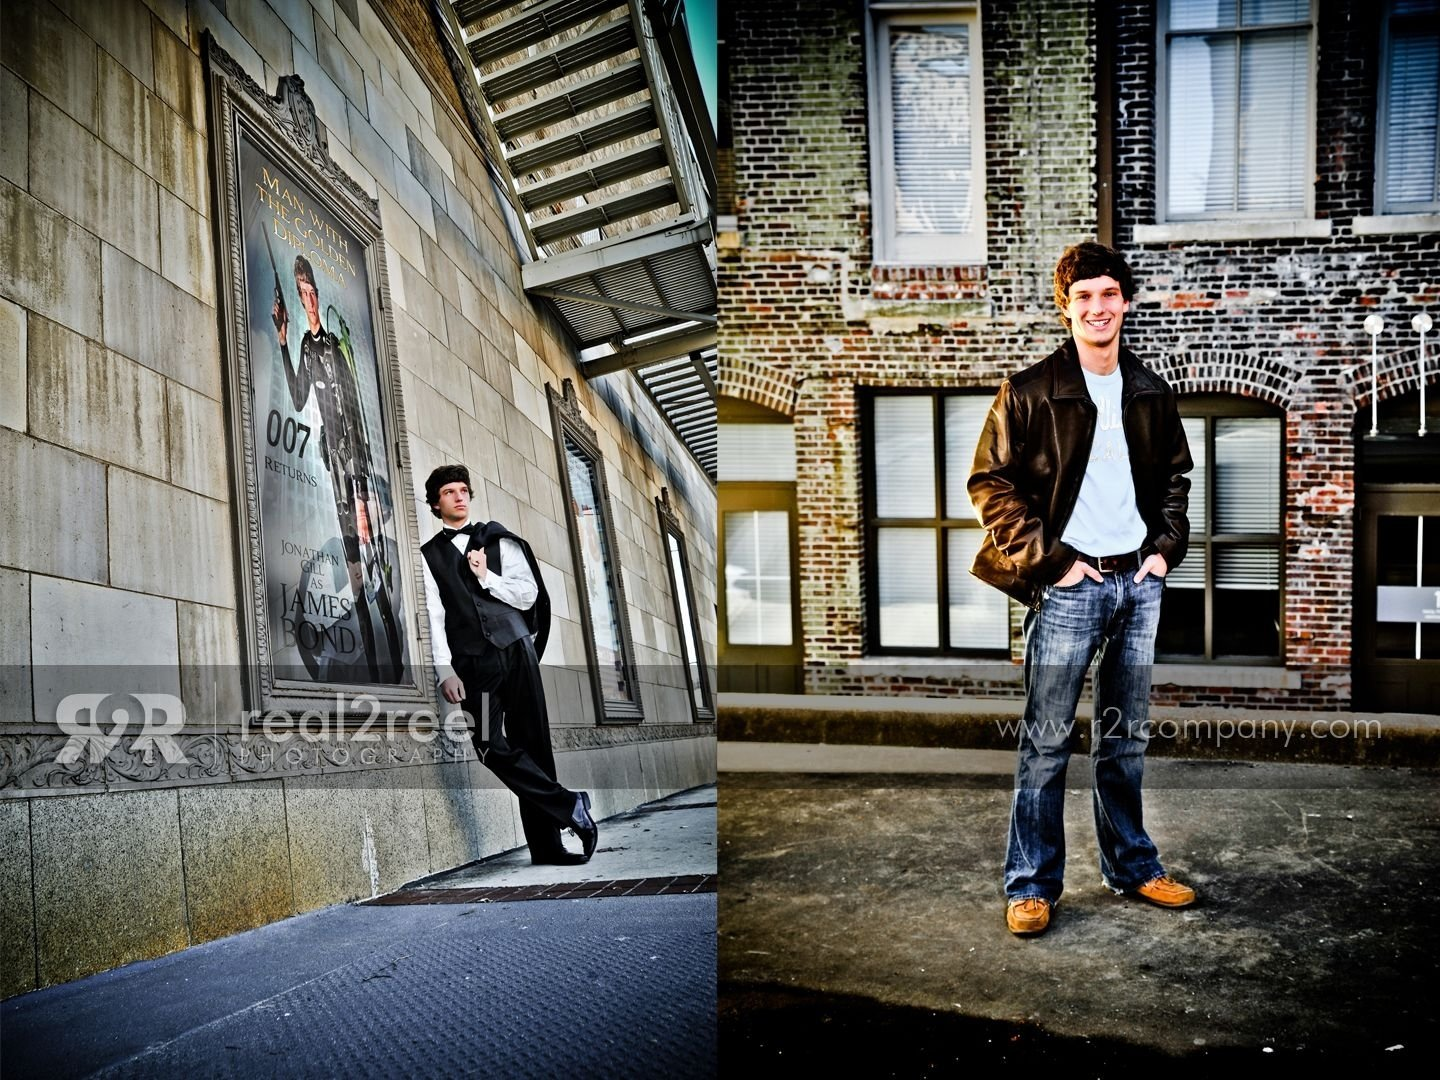 10 Most Popular Cool Ideas For Senior Pictures pinshawna fowler on guys senior portraits outfits pinterest 2021